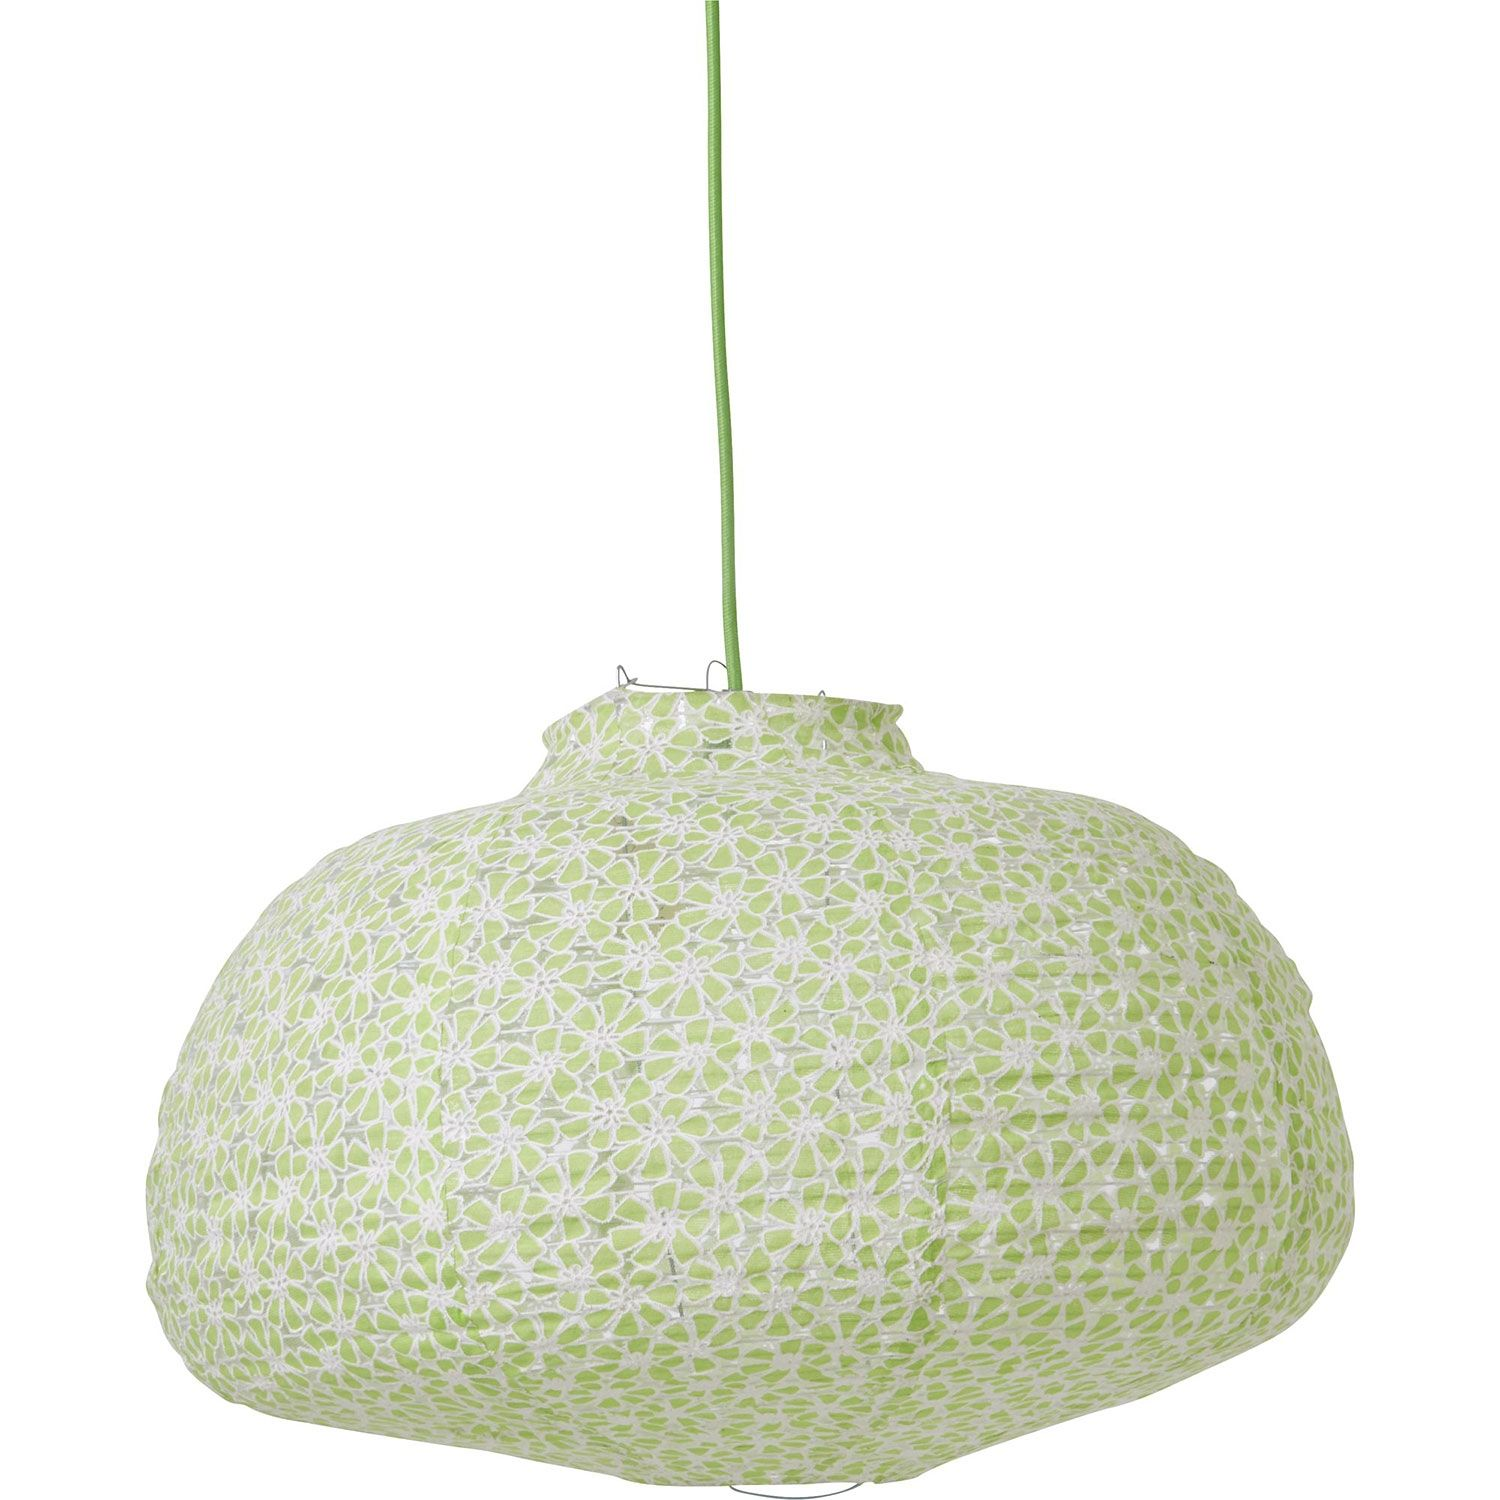 Lamp Shade In Pastel Green And White Flower Fabric